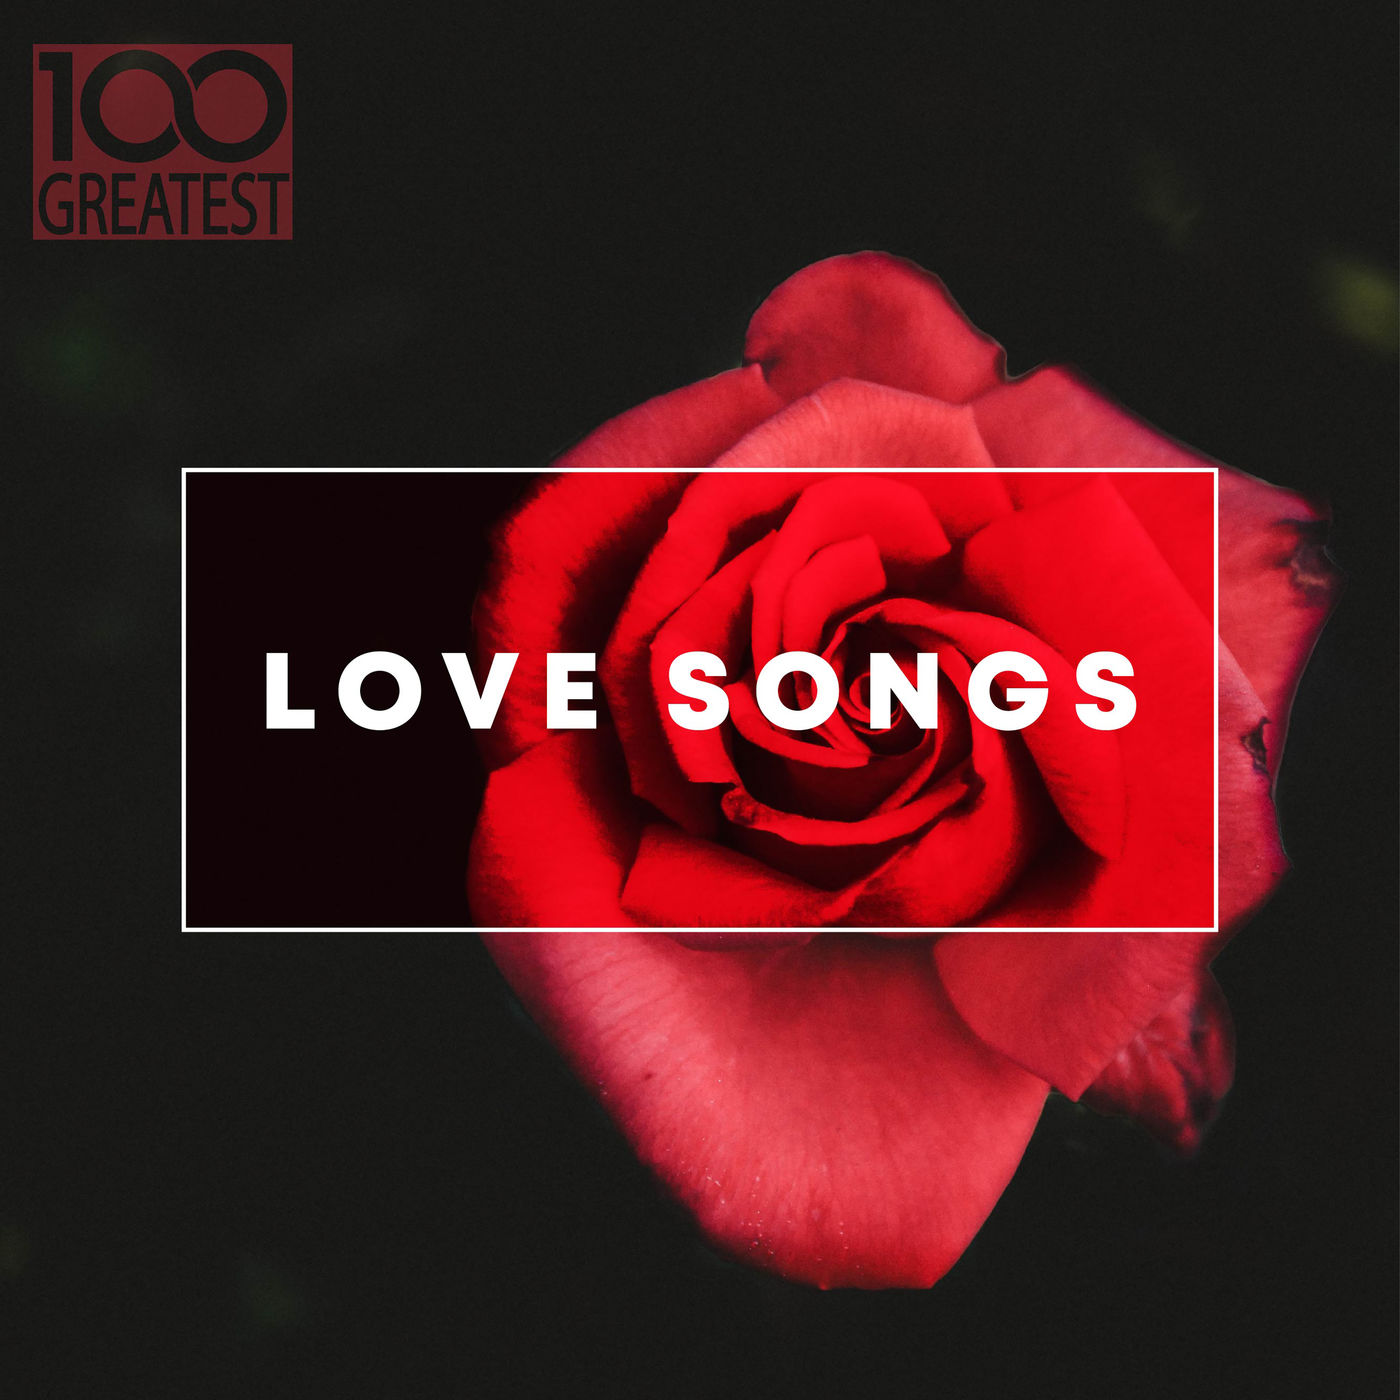 Index Of Sounds Mp3s 06 Various Artists 100 Greatest Love Songs 2019